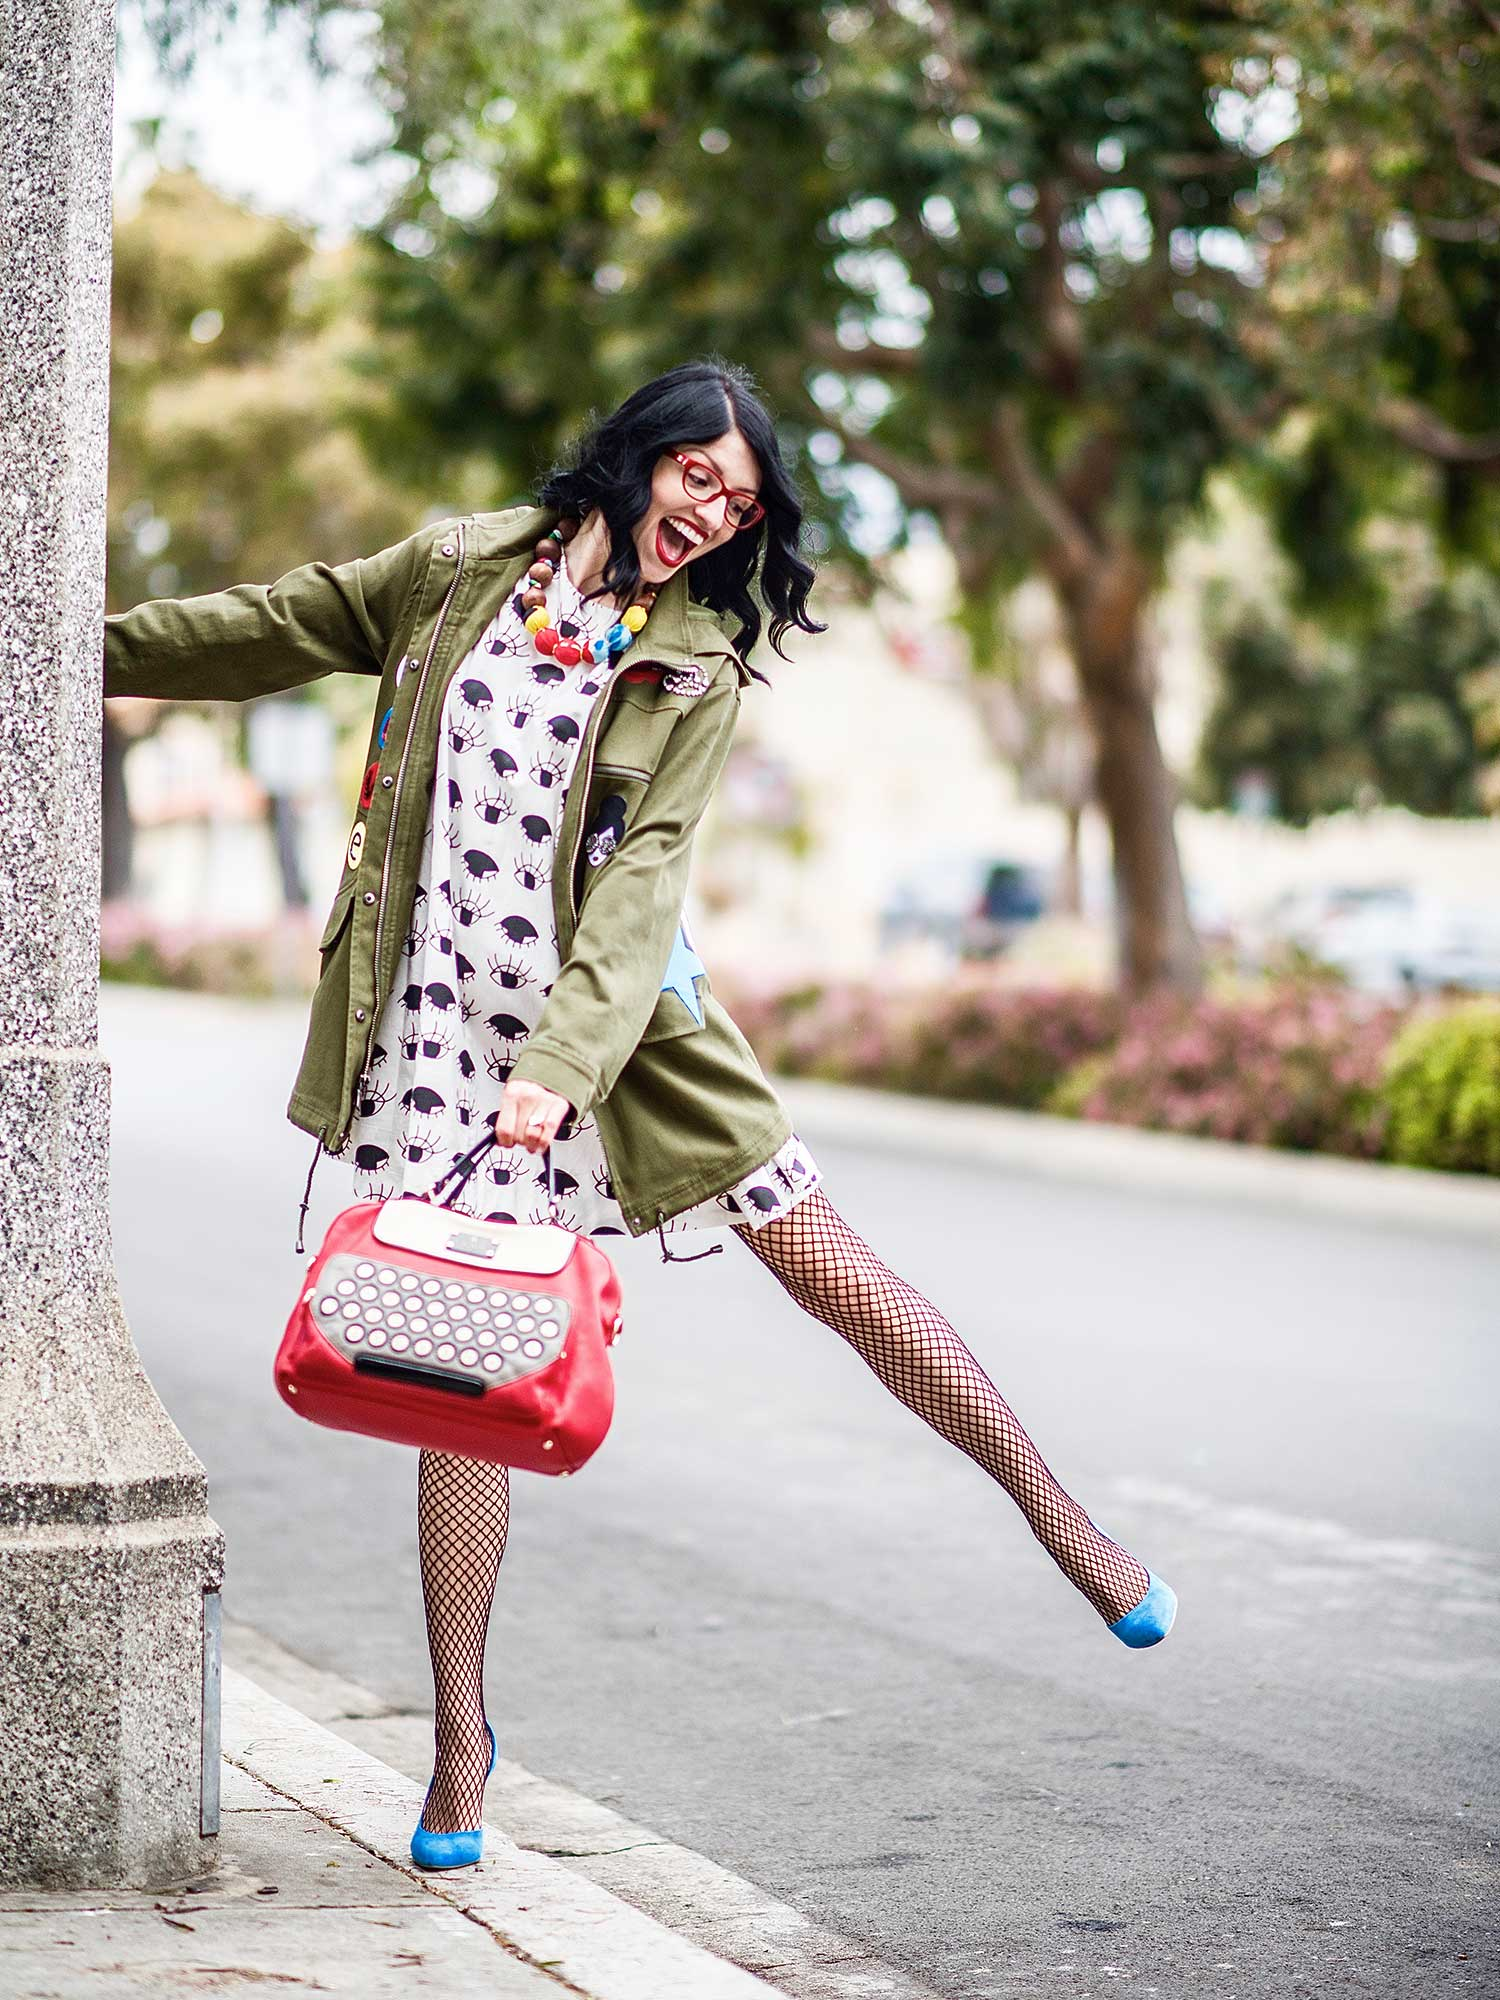 Jenna-Pilant-San-Diego-Style-Blogger-Lucky-Little-Mustardseed-How-To-Wear-A-Rain-Jacket-With-A-Dress-1